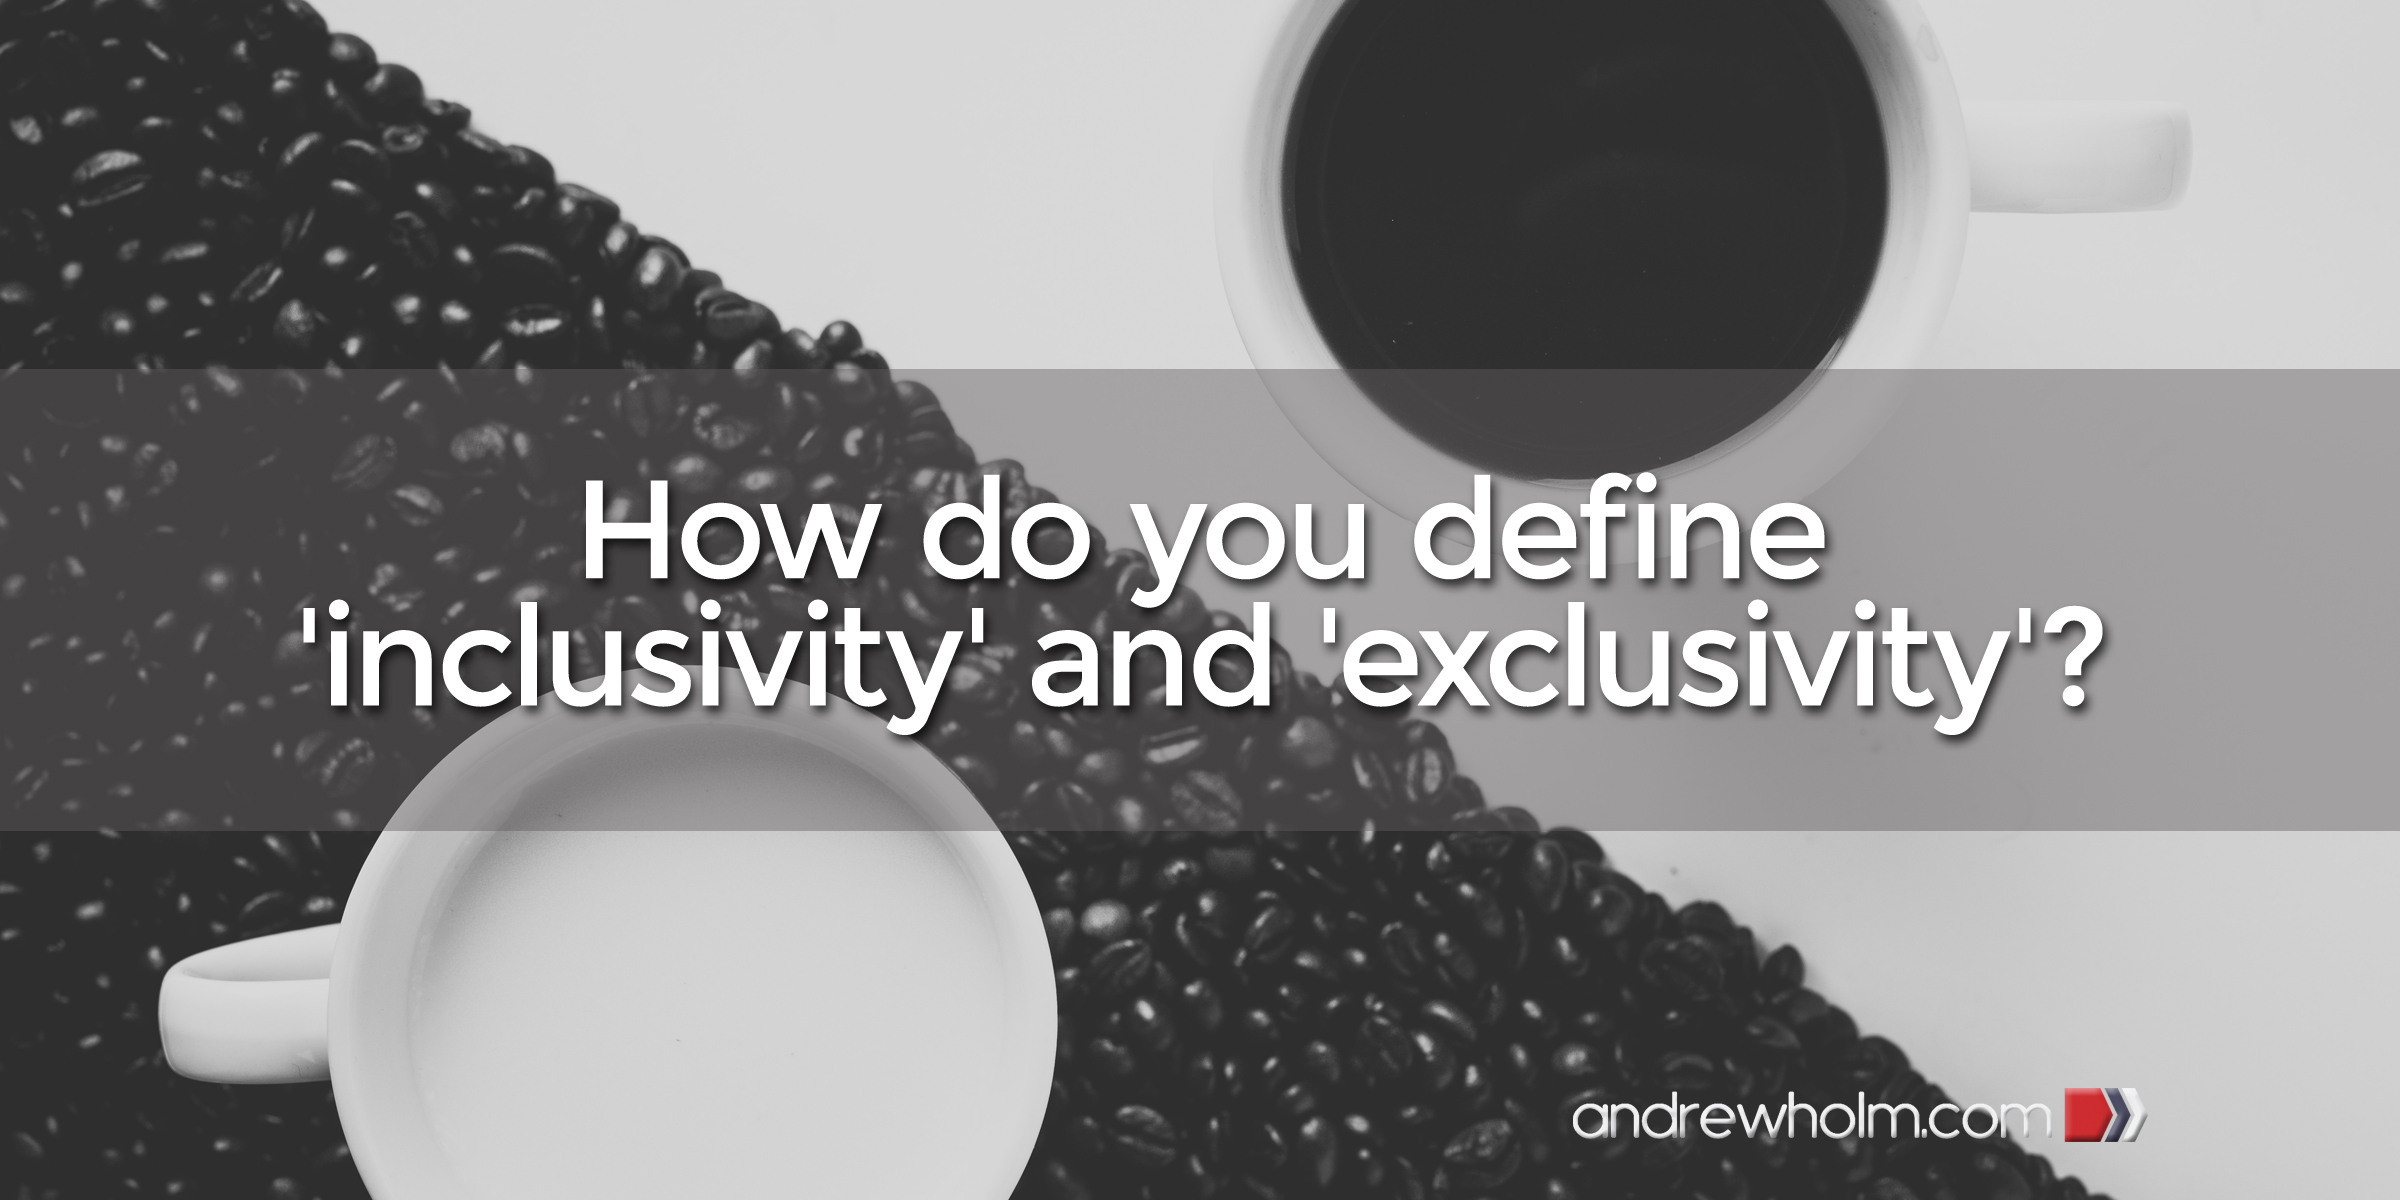 How do you define 'inclusivity' and 'exclusivity'